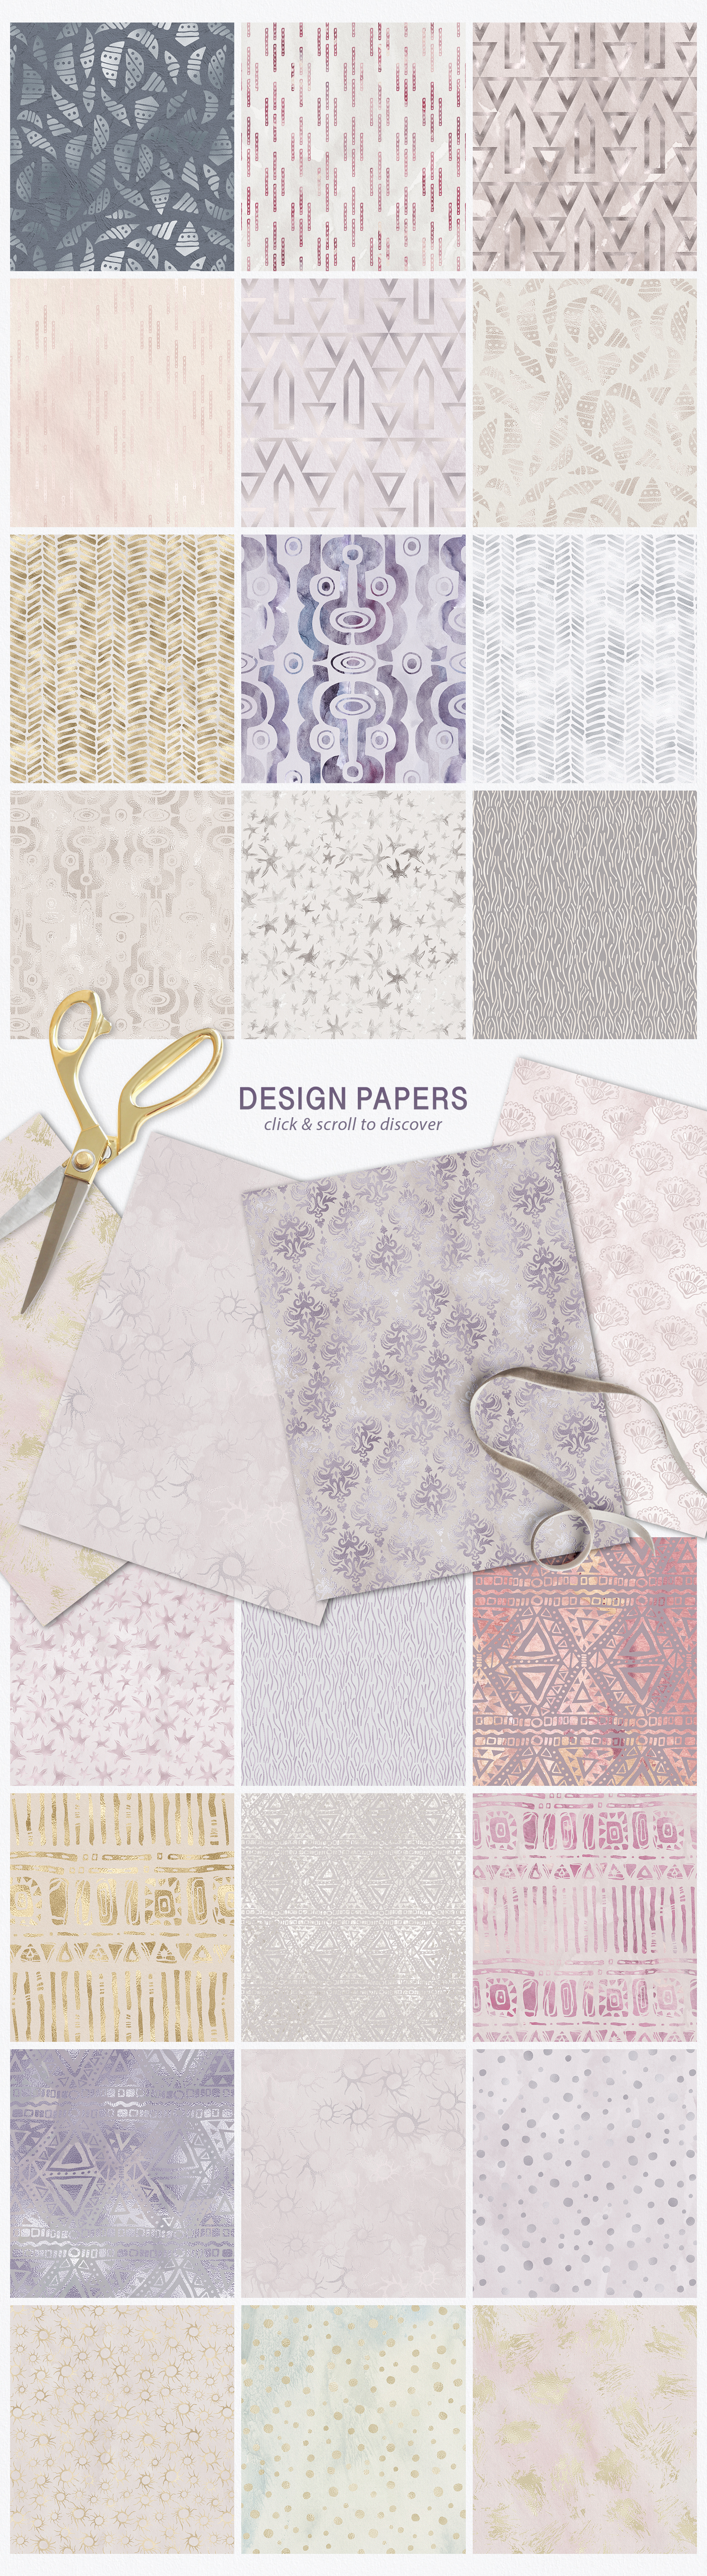 Seamless Textures & Patterns Bundle - Shabby Chic Design Kit example image 9